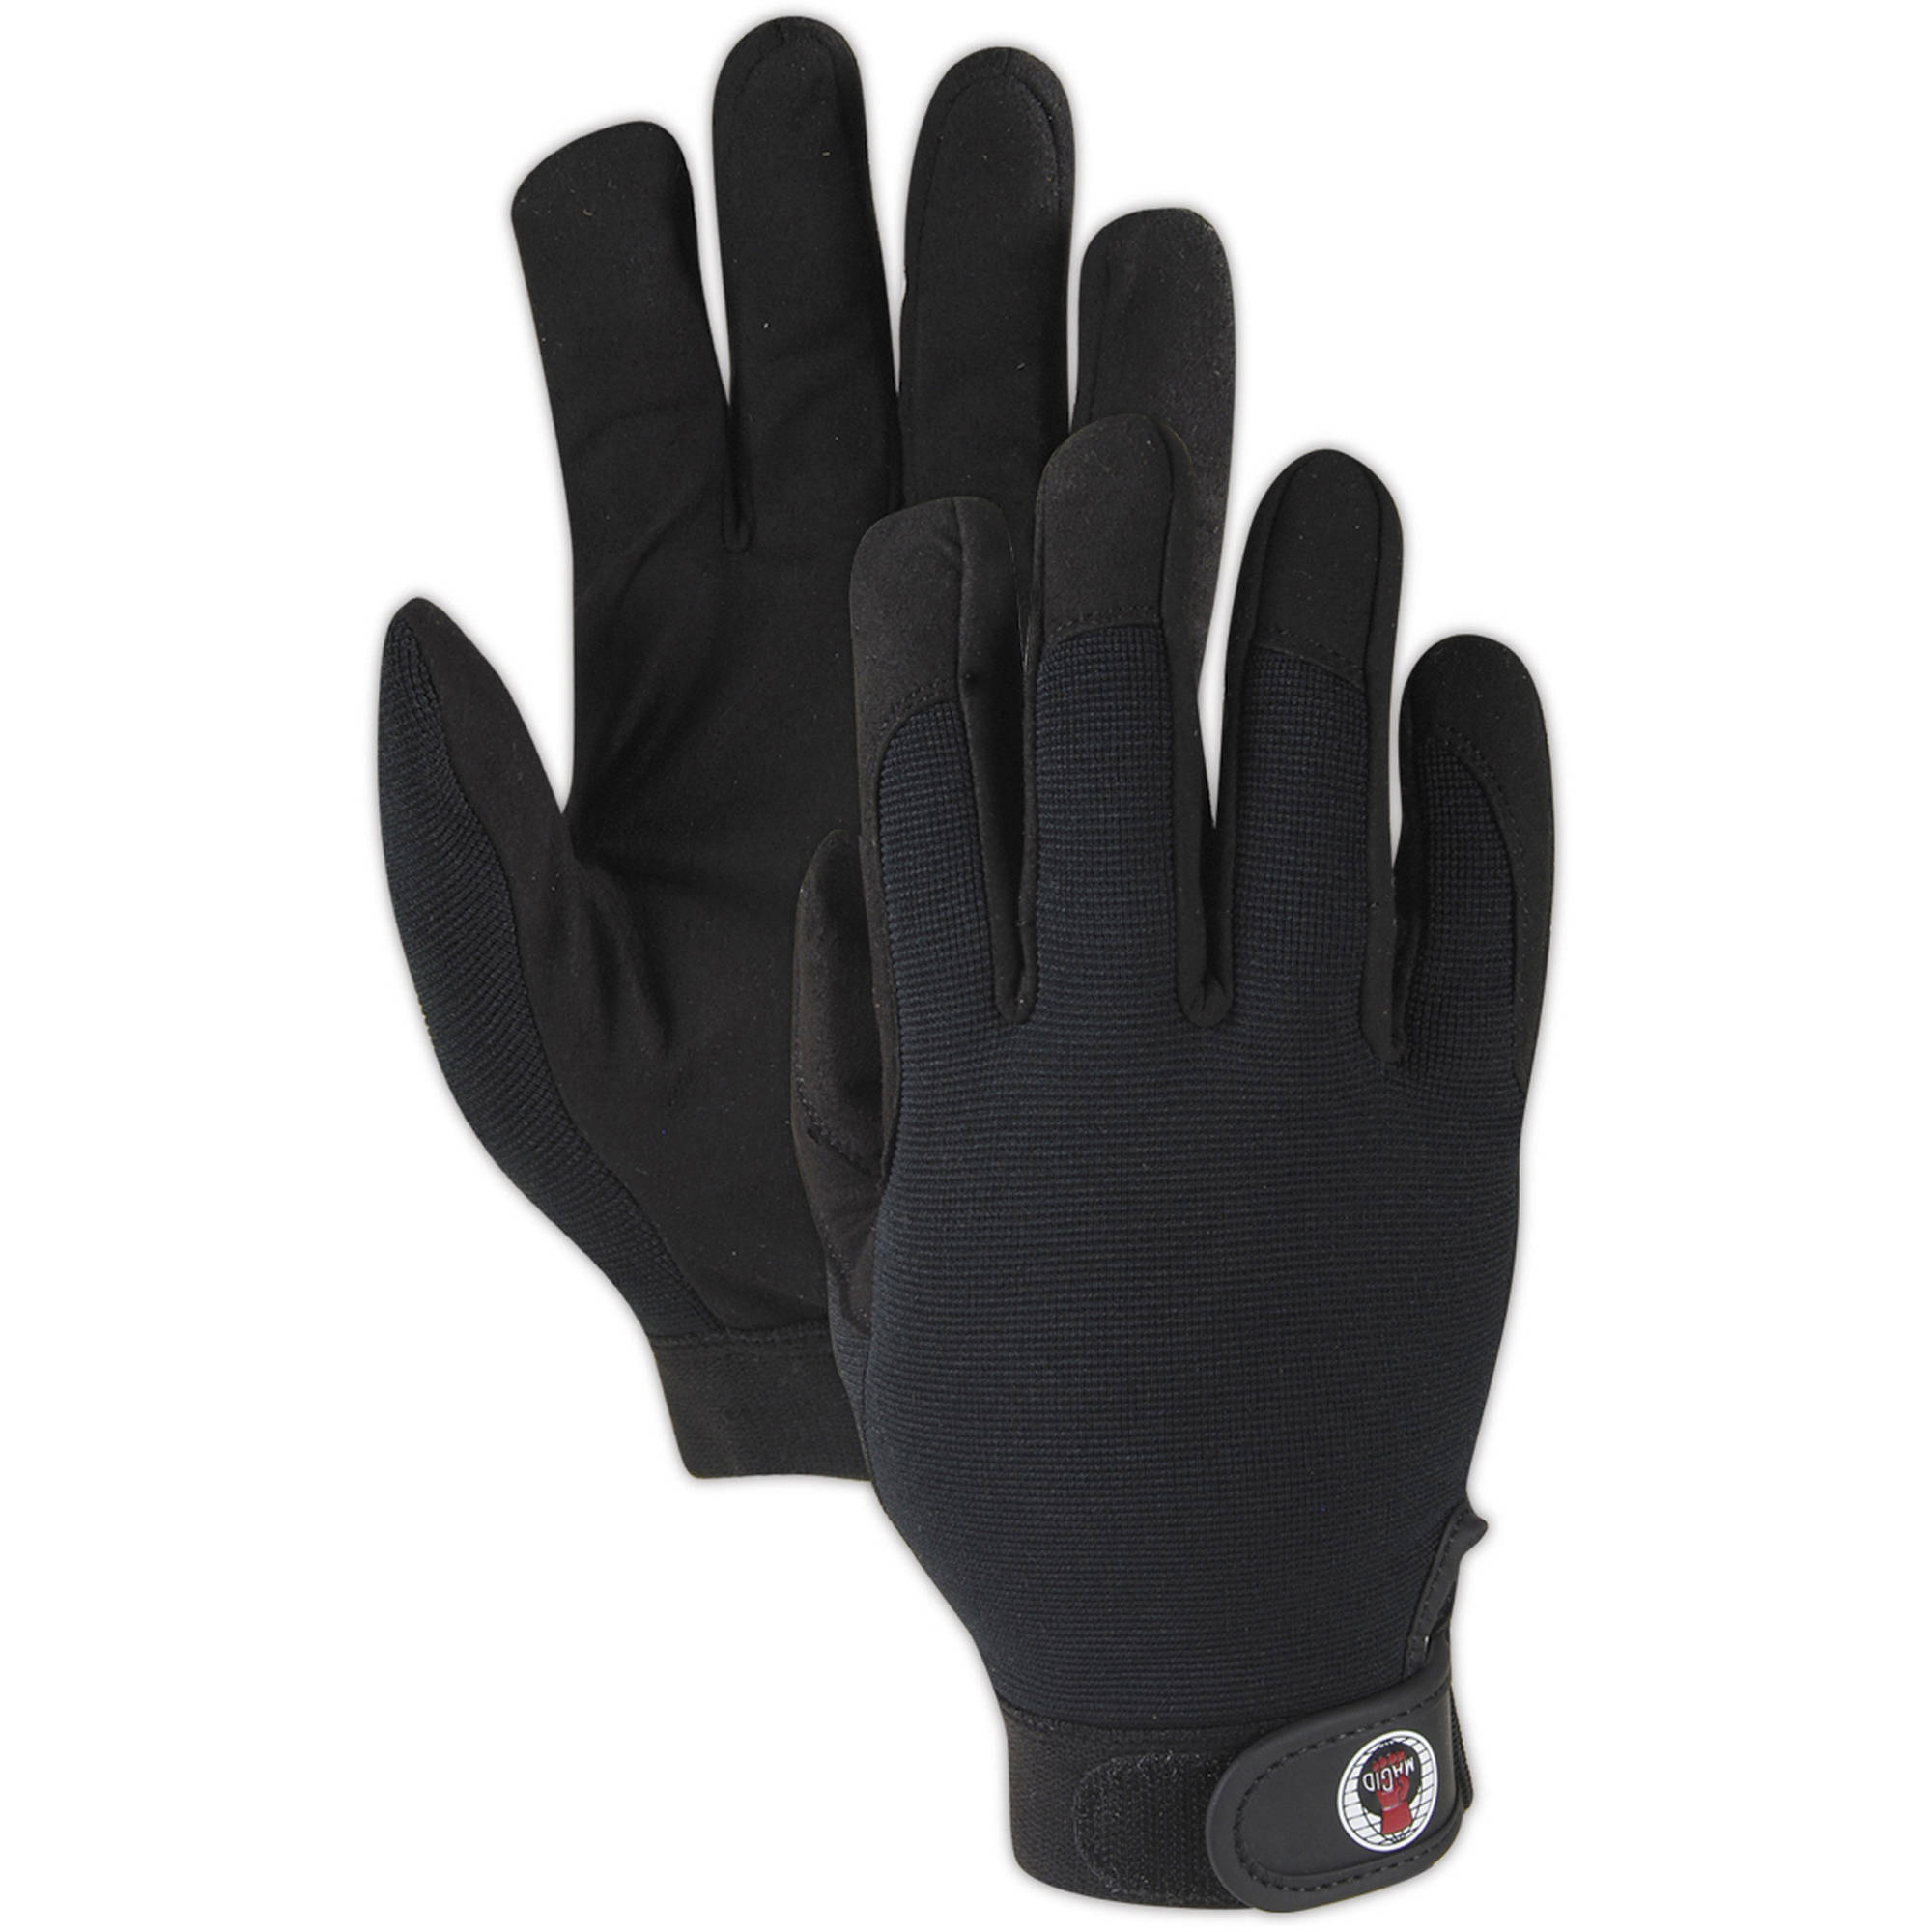 Magid Glove AG7000TM RoadMaster Work Glove with Spandex Back and Leather Palm, Medium